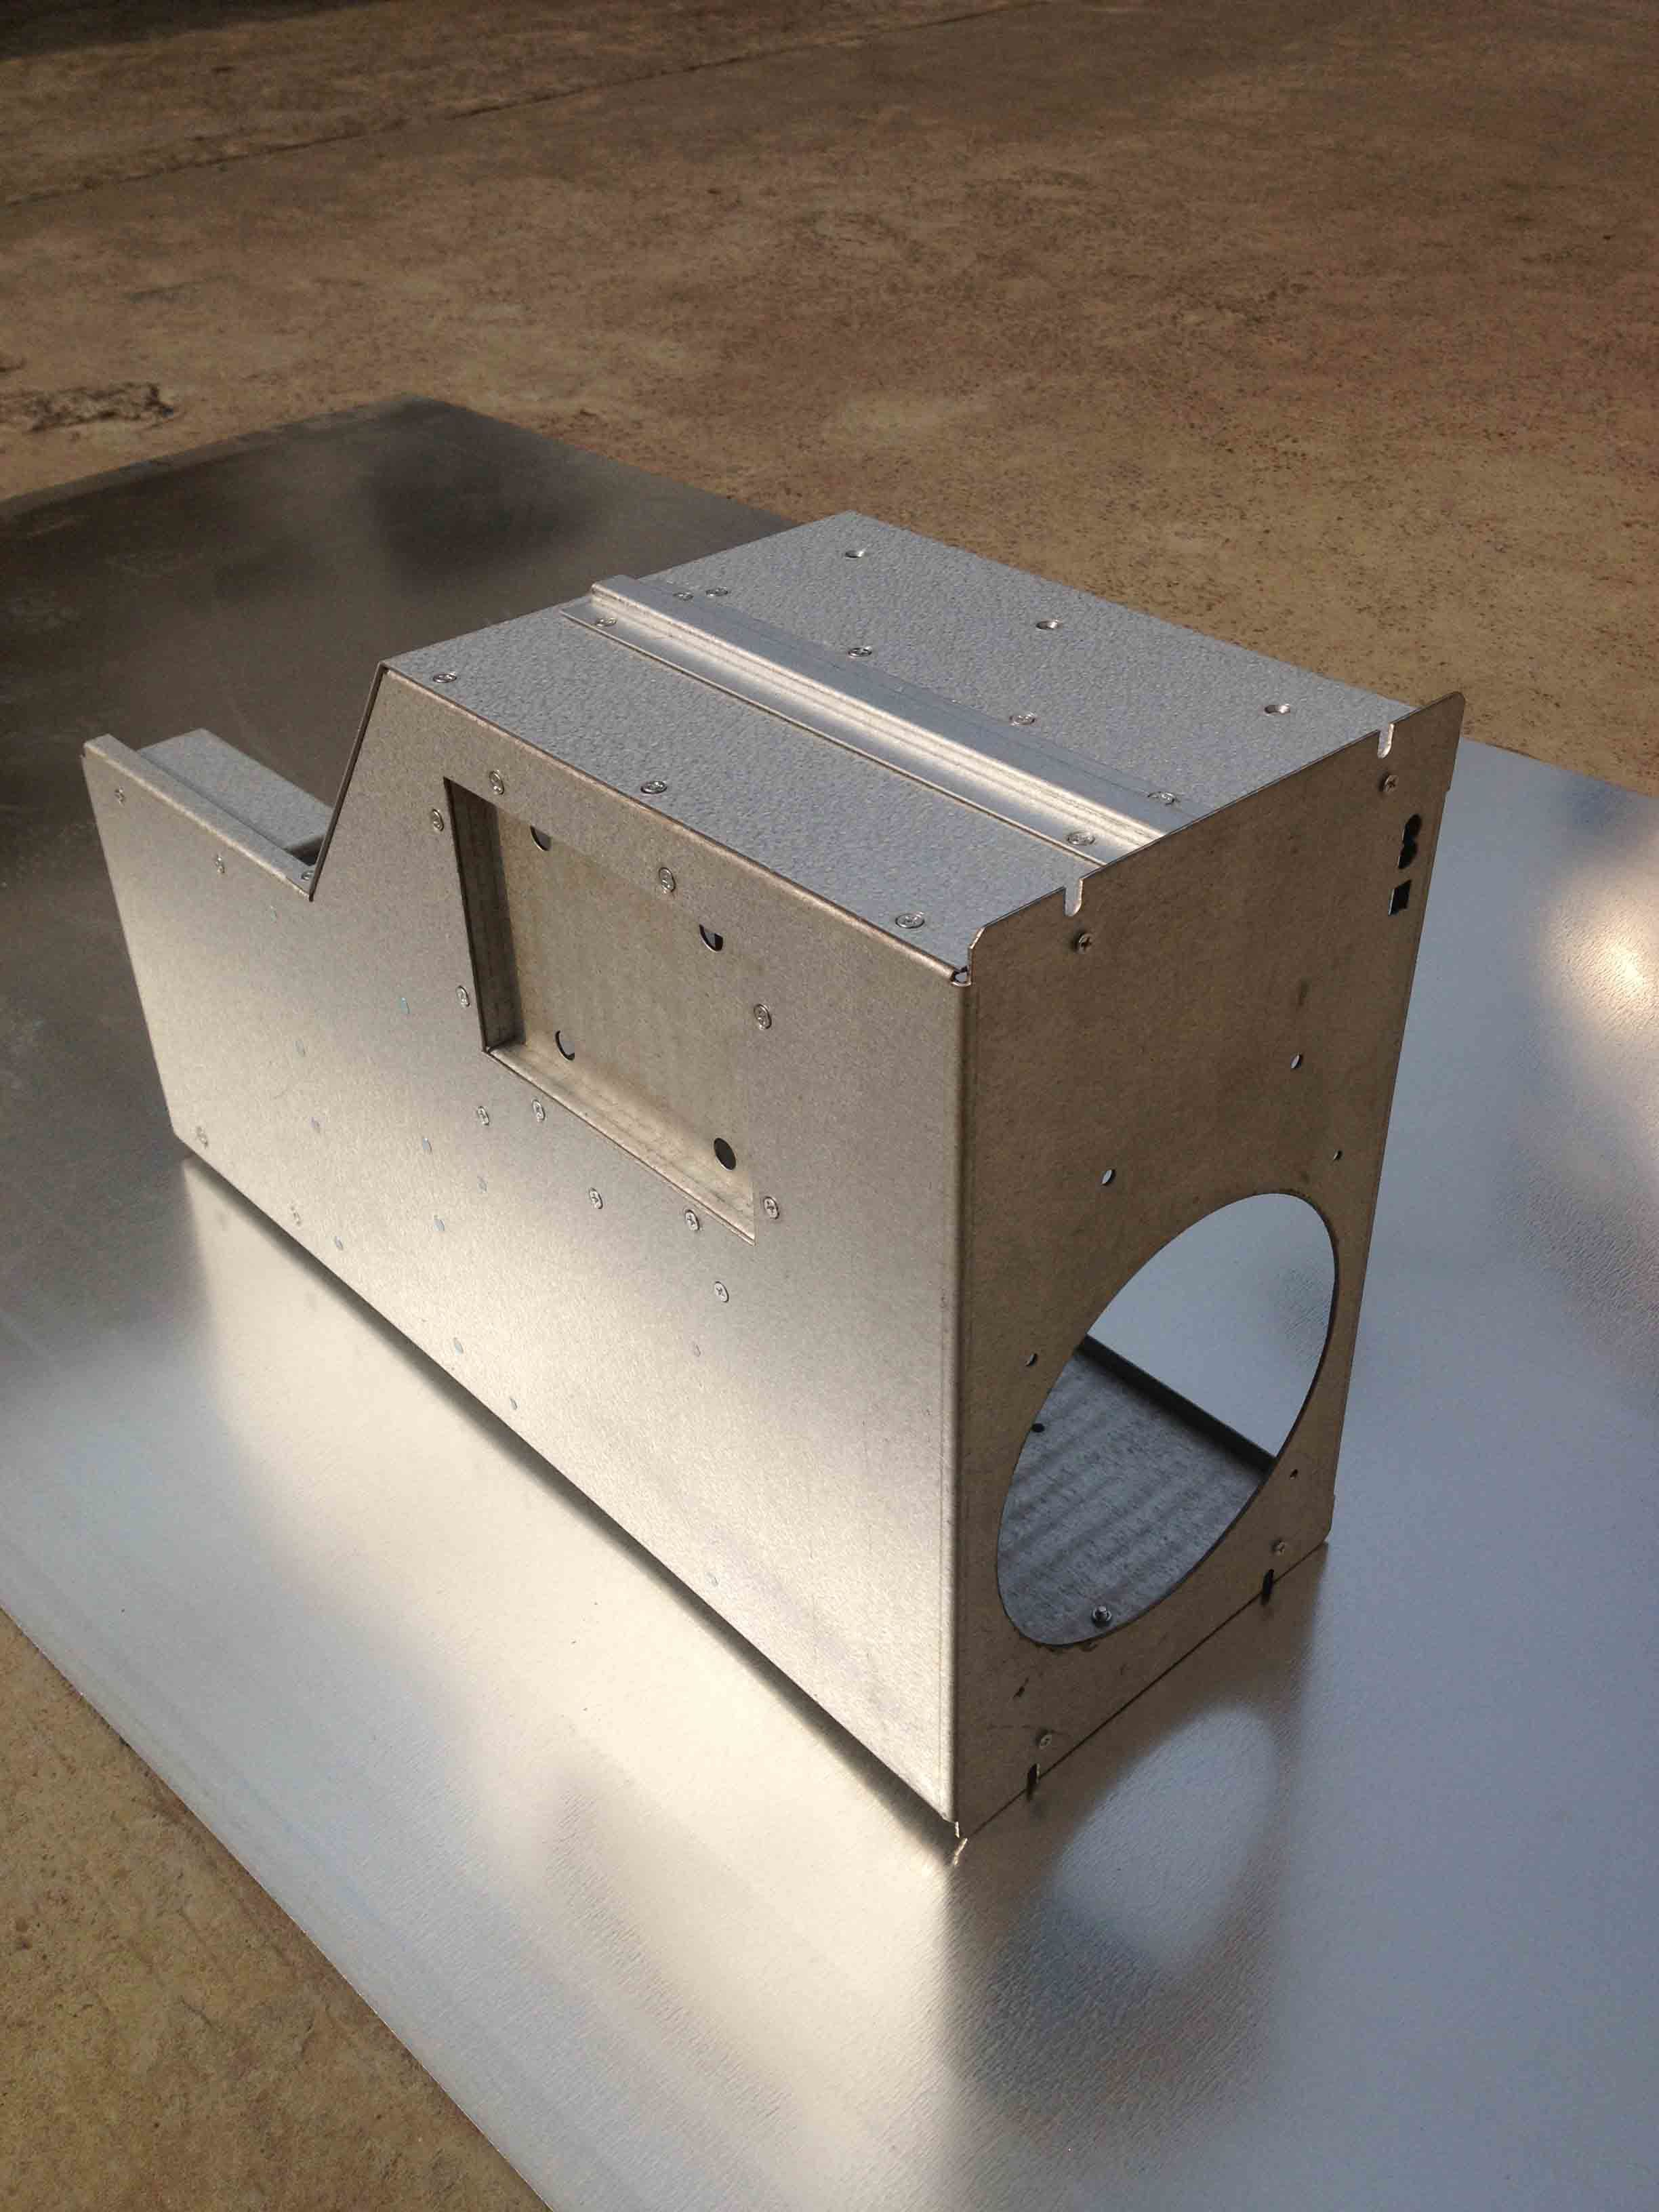 Customized Machine Box for Sheetmetal